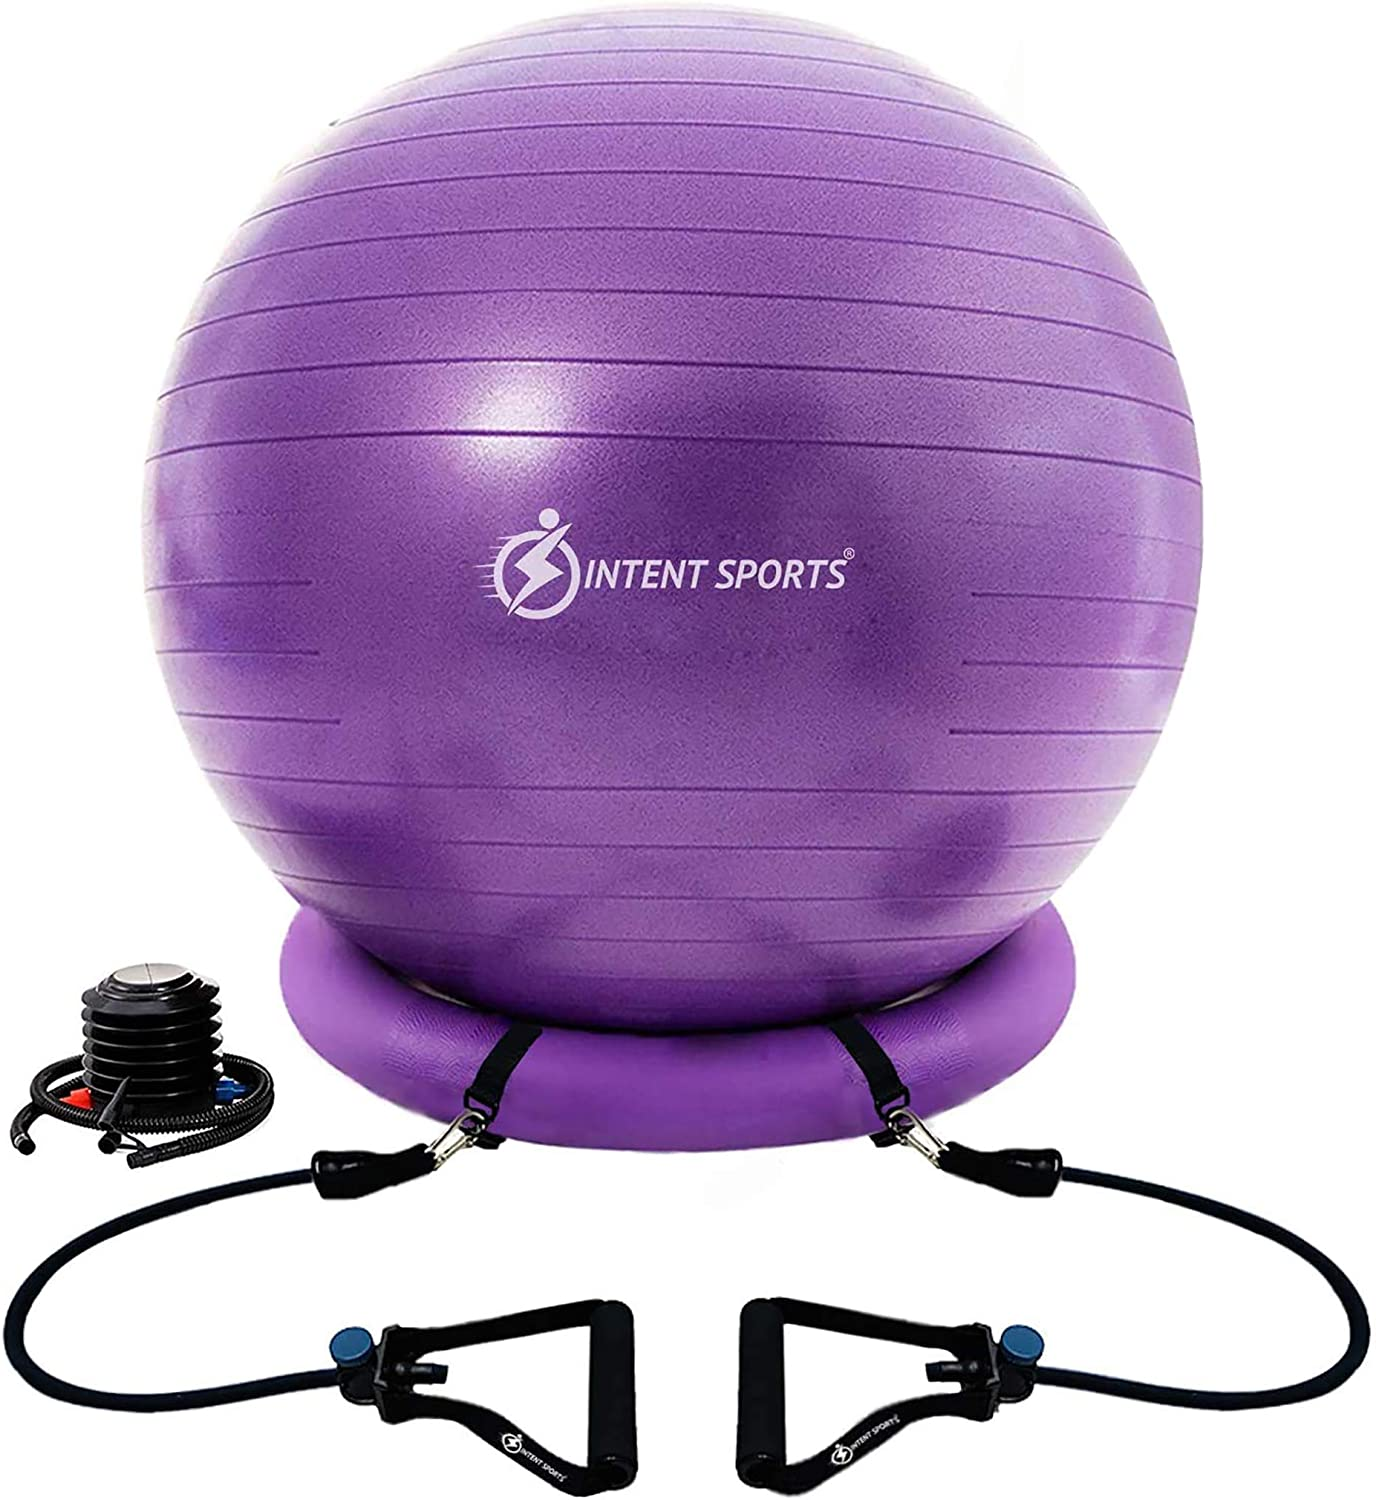 INTENT SPORTS Yoga Ball Chair – Stability Ball with Inflatable Stability Base & Resistance Bands, Fitness Ball for Home Gym, Office, Improves Back Pain, Posture & Balance, Exercise Videos (65 cm)